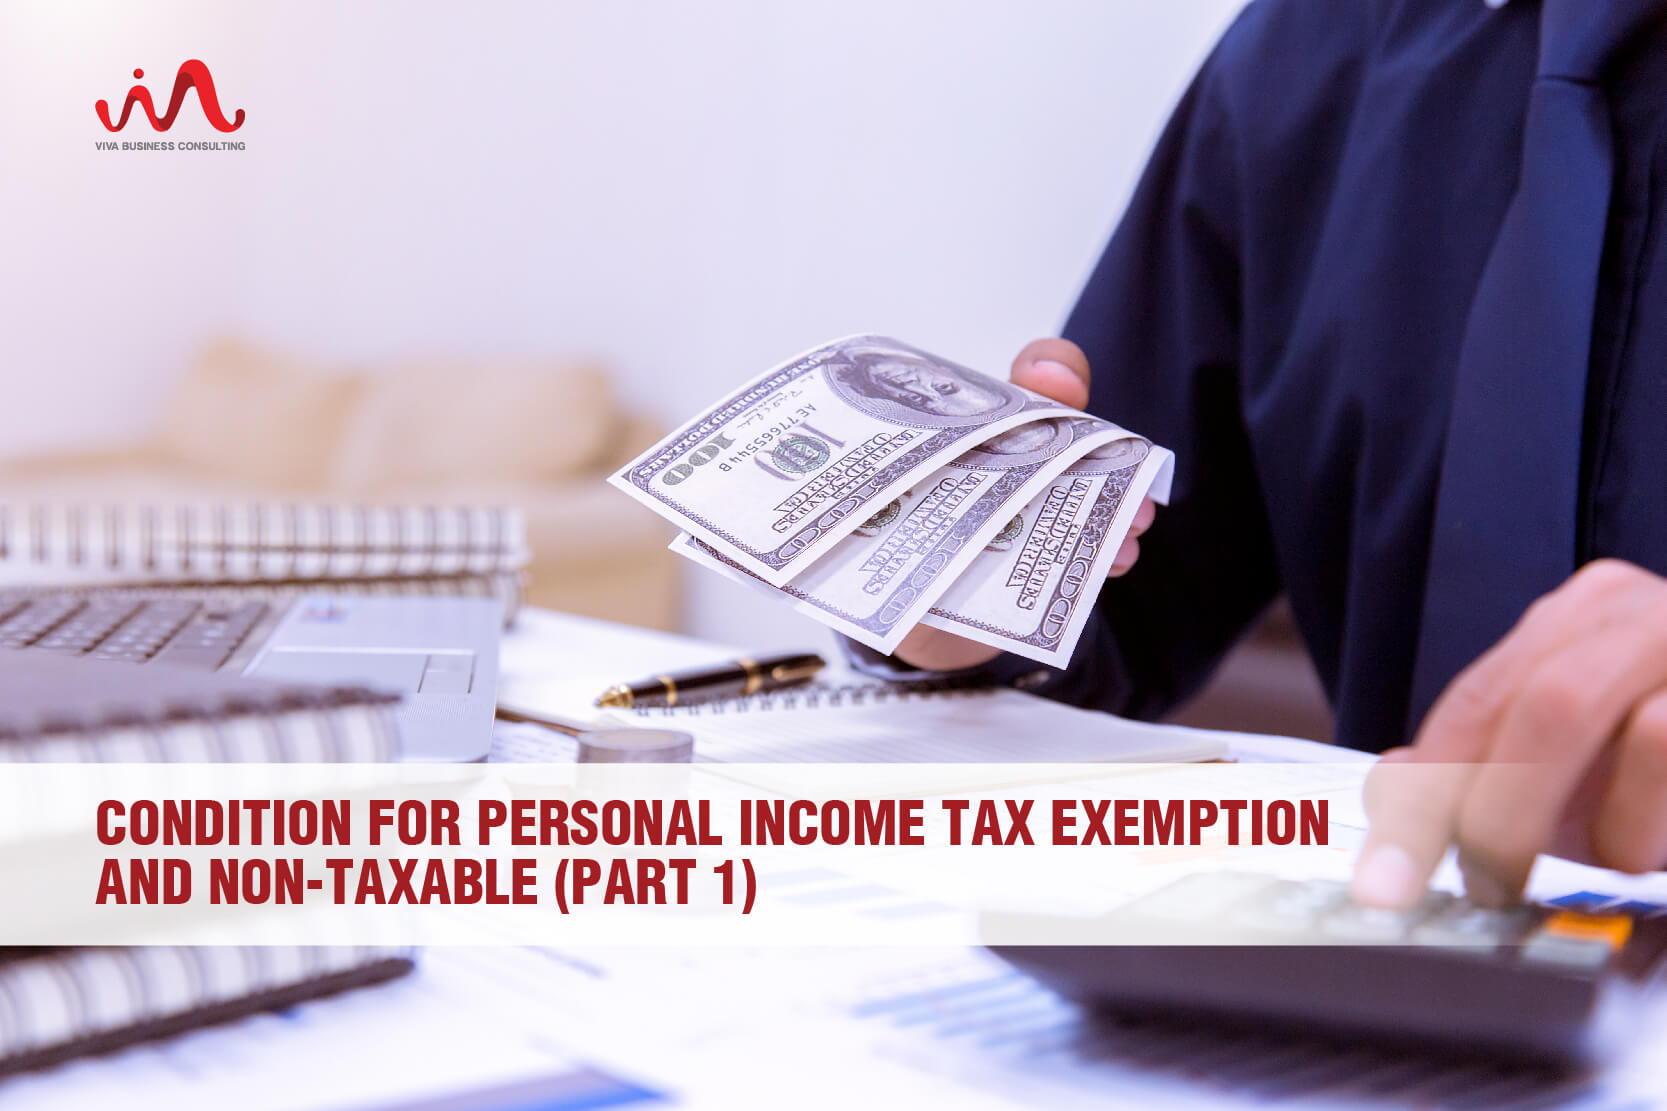 Condition For Personal Income Tax Exemption And Non-Taxable